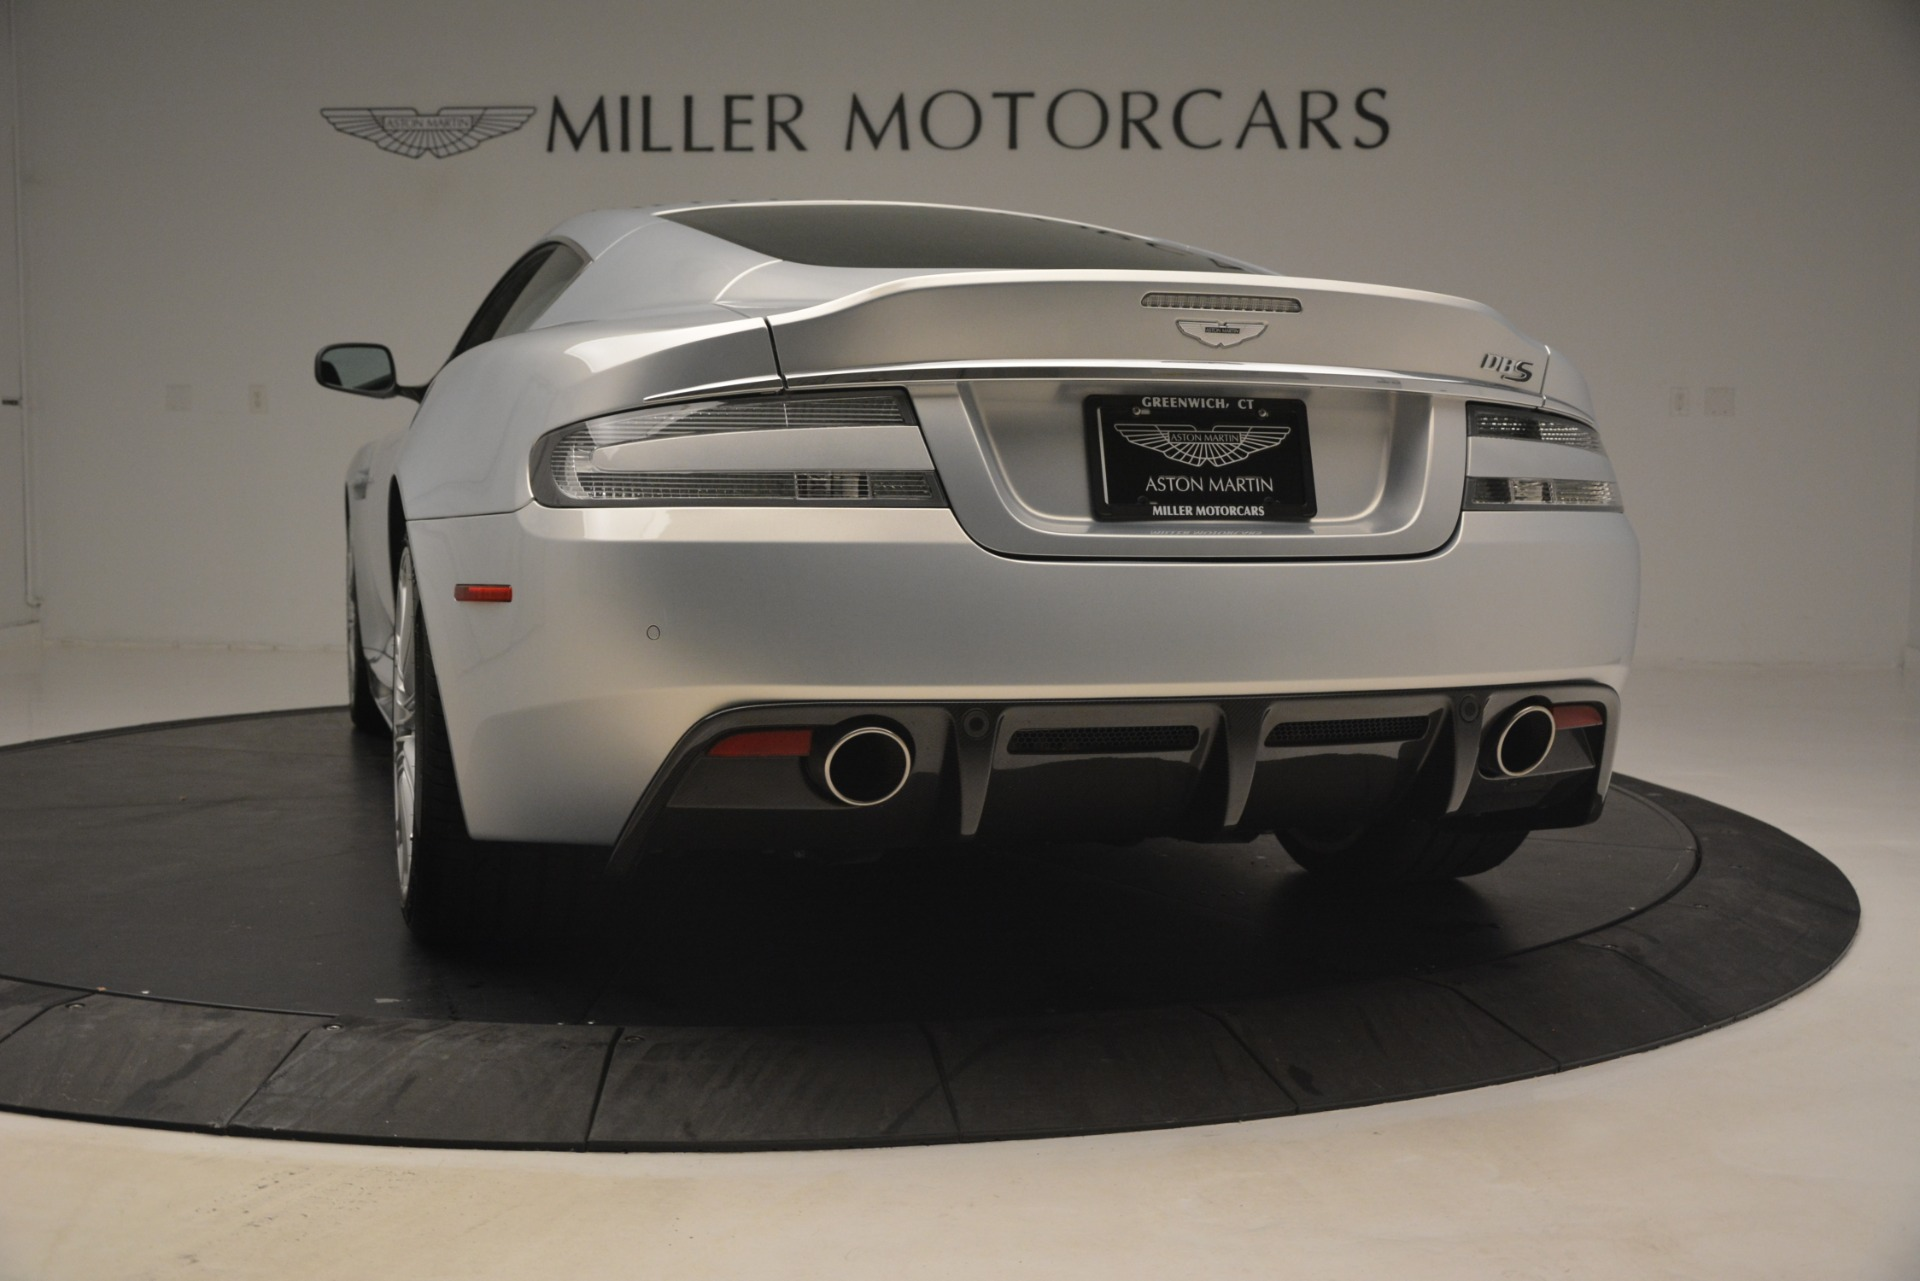 Used 2009 Aston Martin DBS Coupe For Sale In Westport, CT 3033_p15